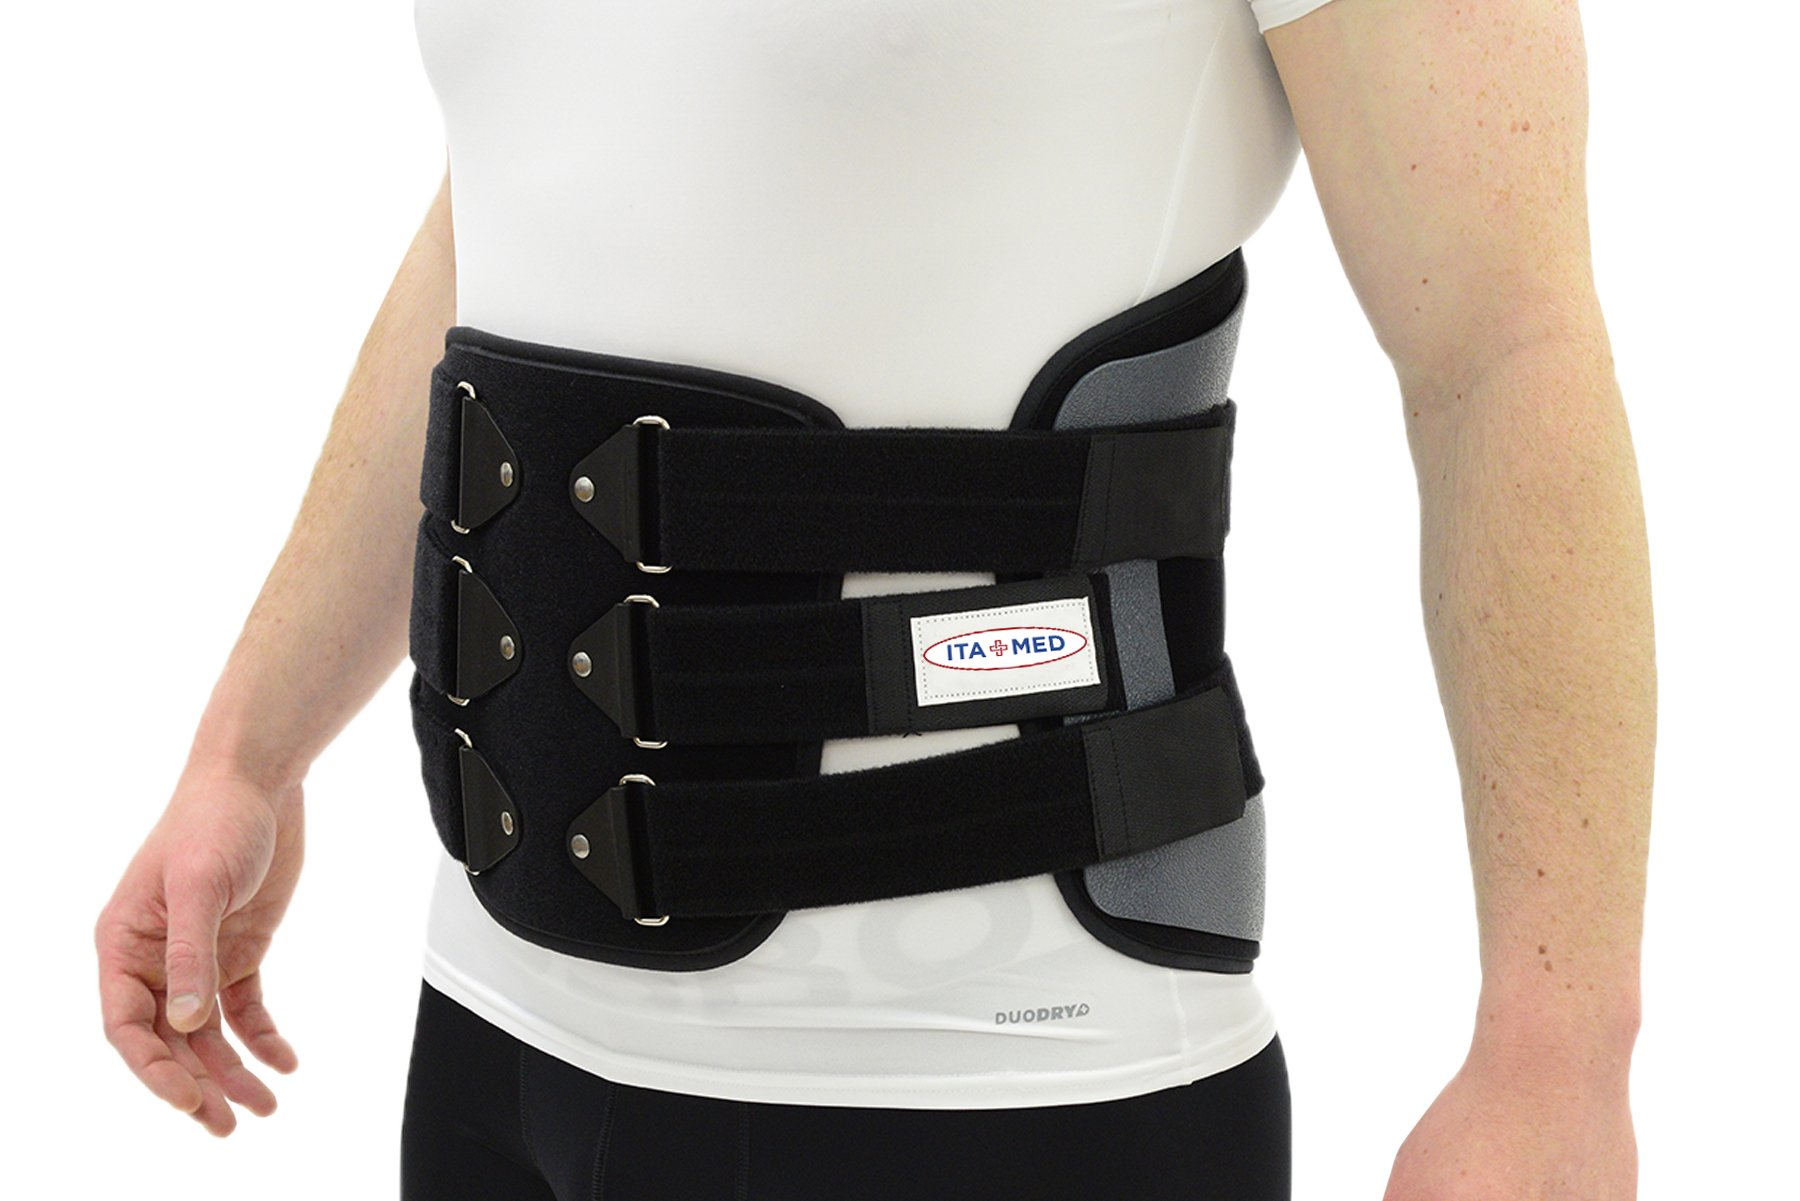 ITA-MED Back Support Lumbosacral Orthosis (Chair Back) Post-Op Belt, XL